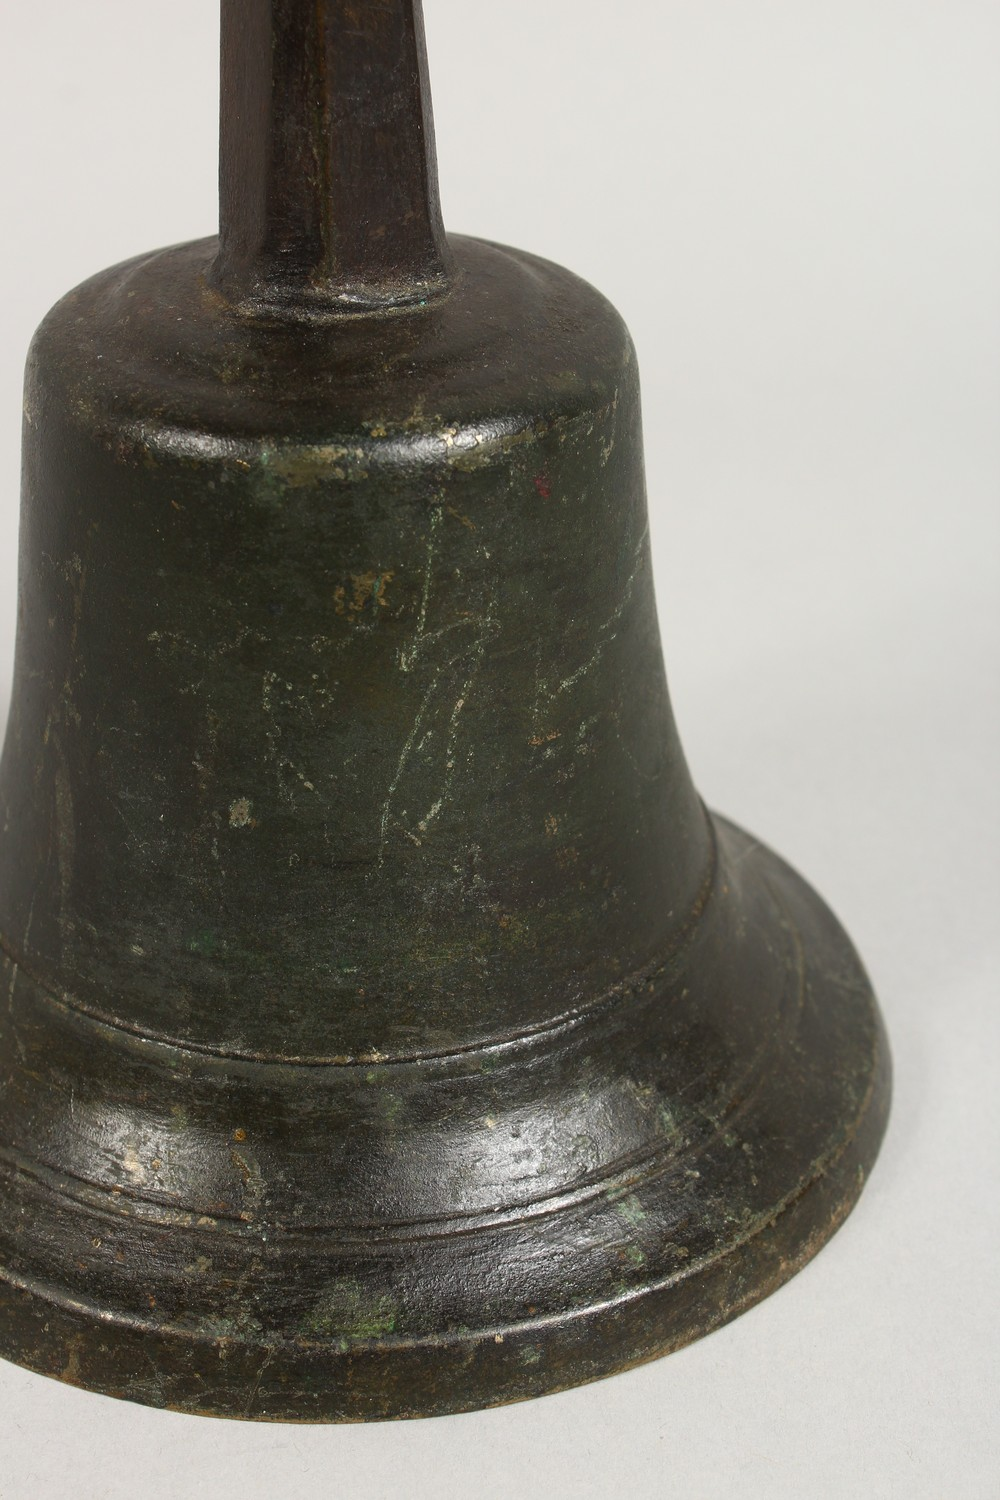 Lot 1493 - AN OLD HAND BELL, with wrought iron handle. 10ins high.